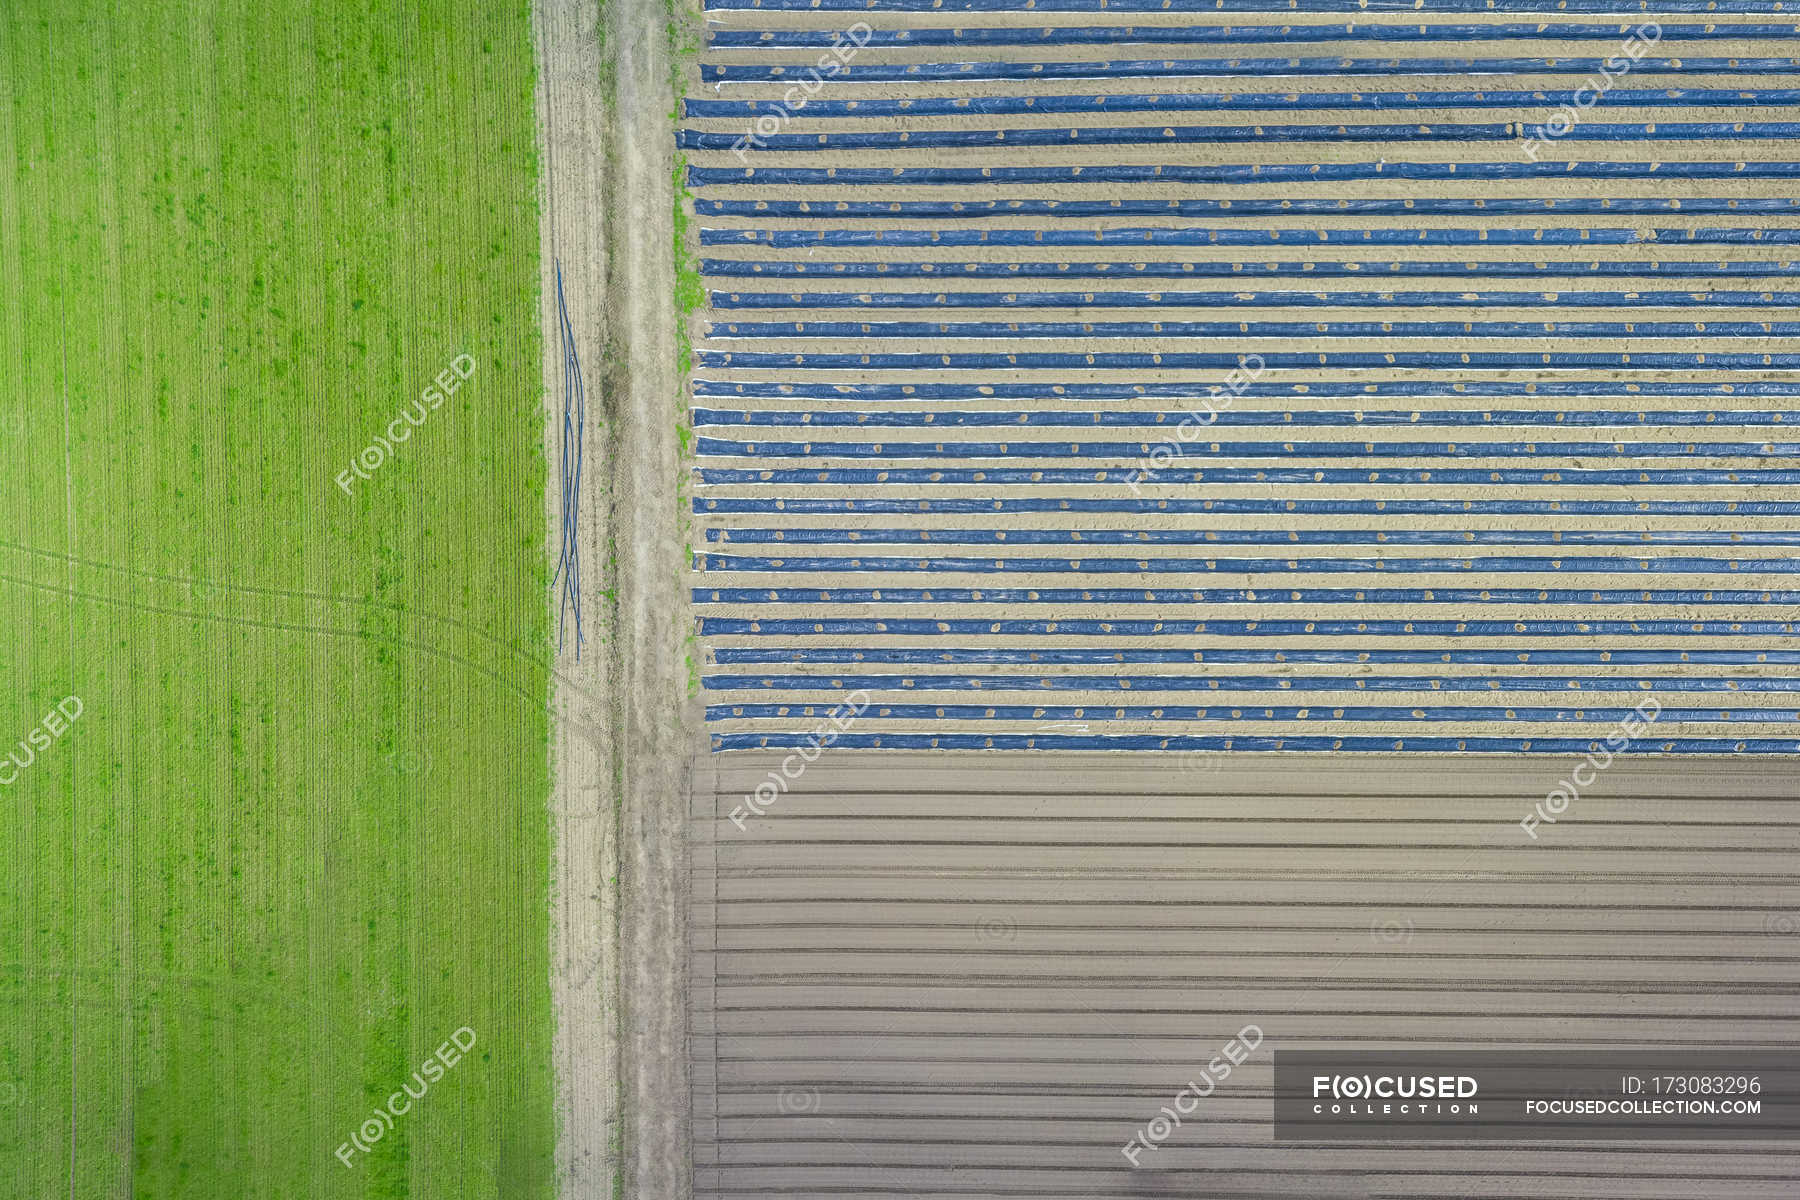 grass field aerial. Aerial View Of Green Grass And Field During Daytime \u2014 Stock Photo | #173083296 N